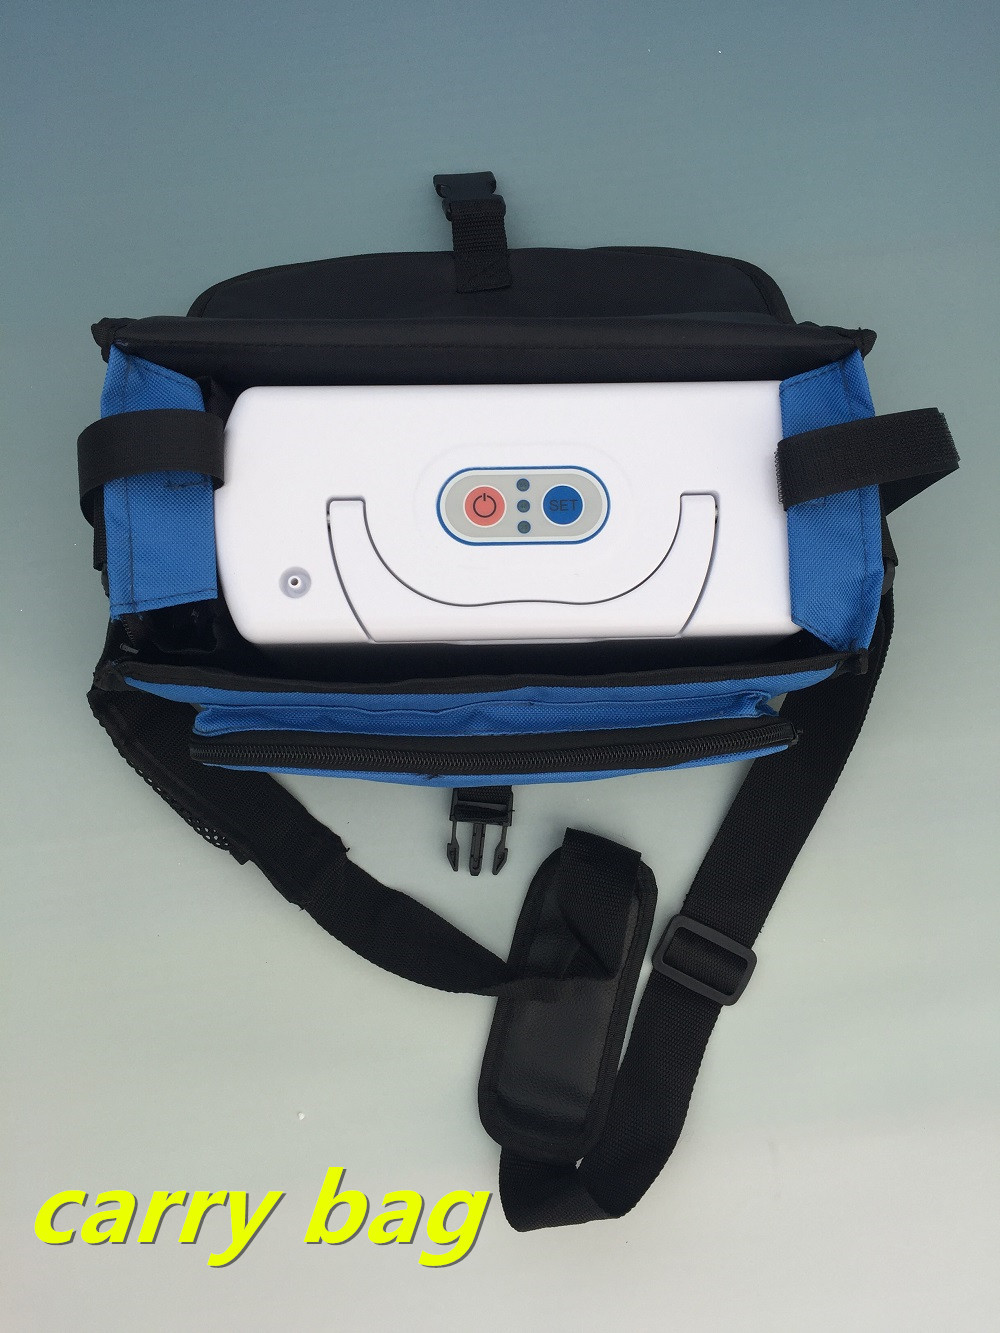 3L min 29 purity battery use oxygen concentrator generator with carry bag car use oxygenation oxygen